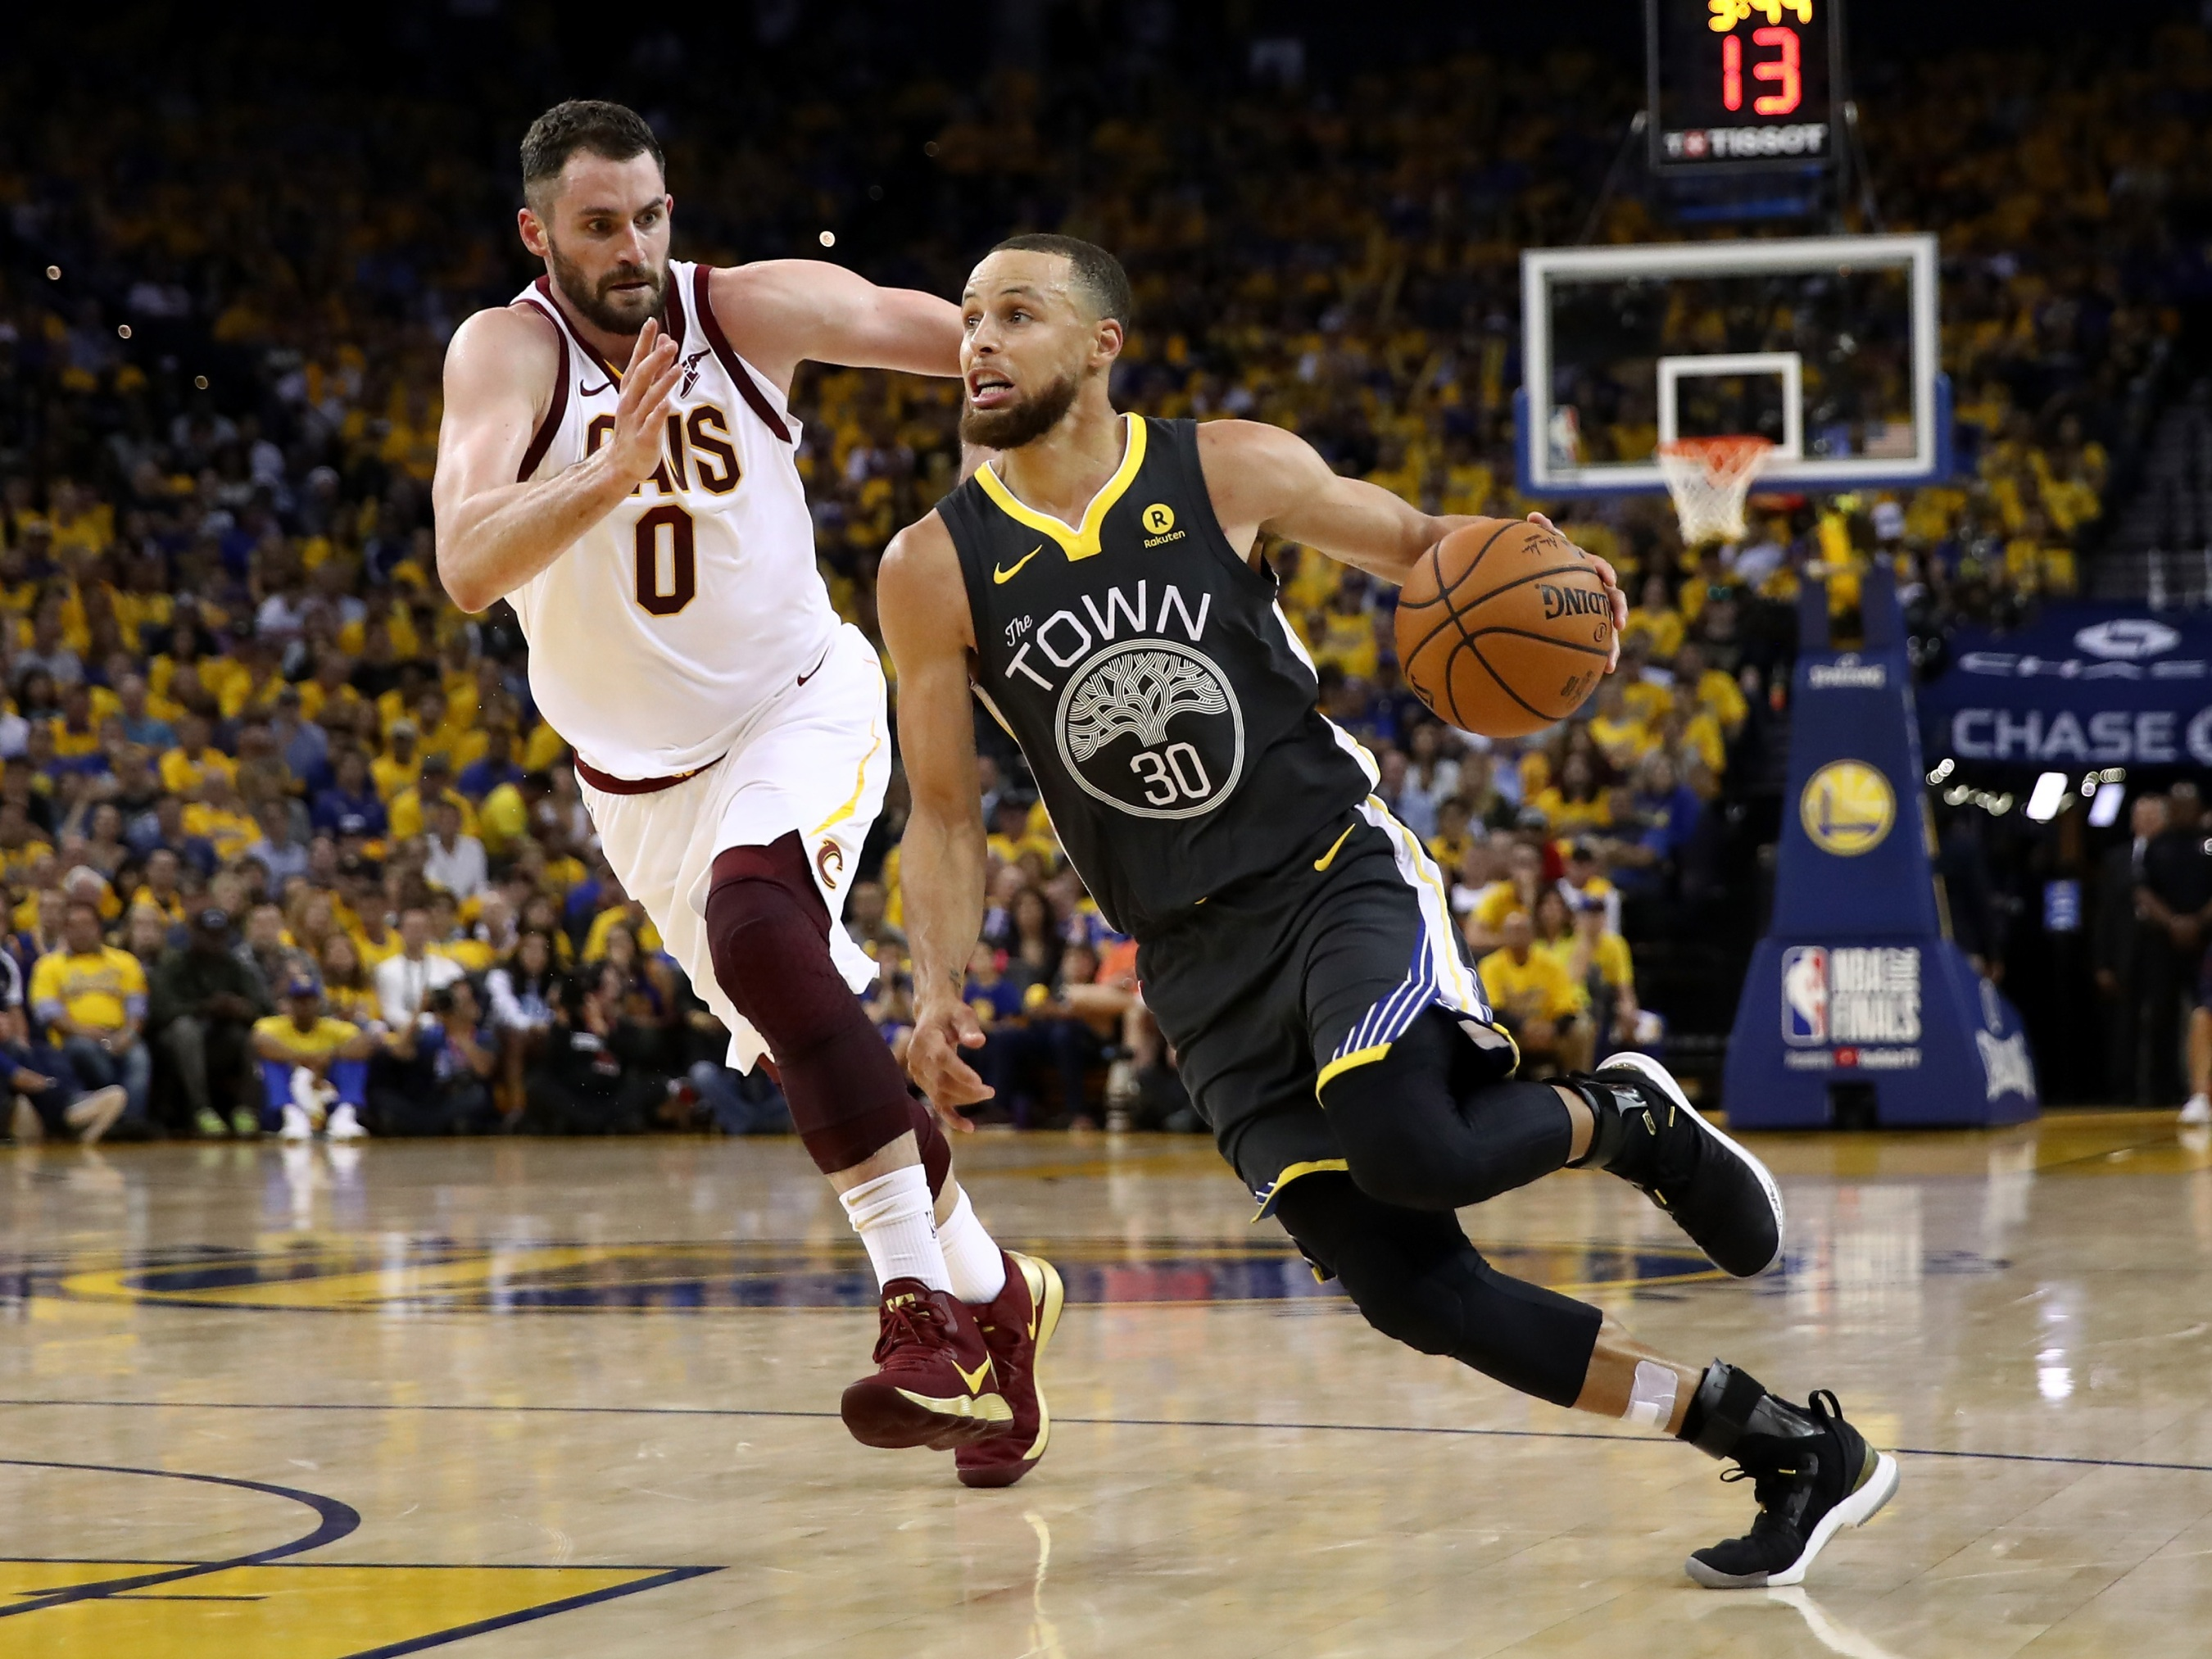 c212ed1d116f Steph Curry Is Running Circles Around The Cavs  Defense. By Chris Herring